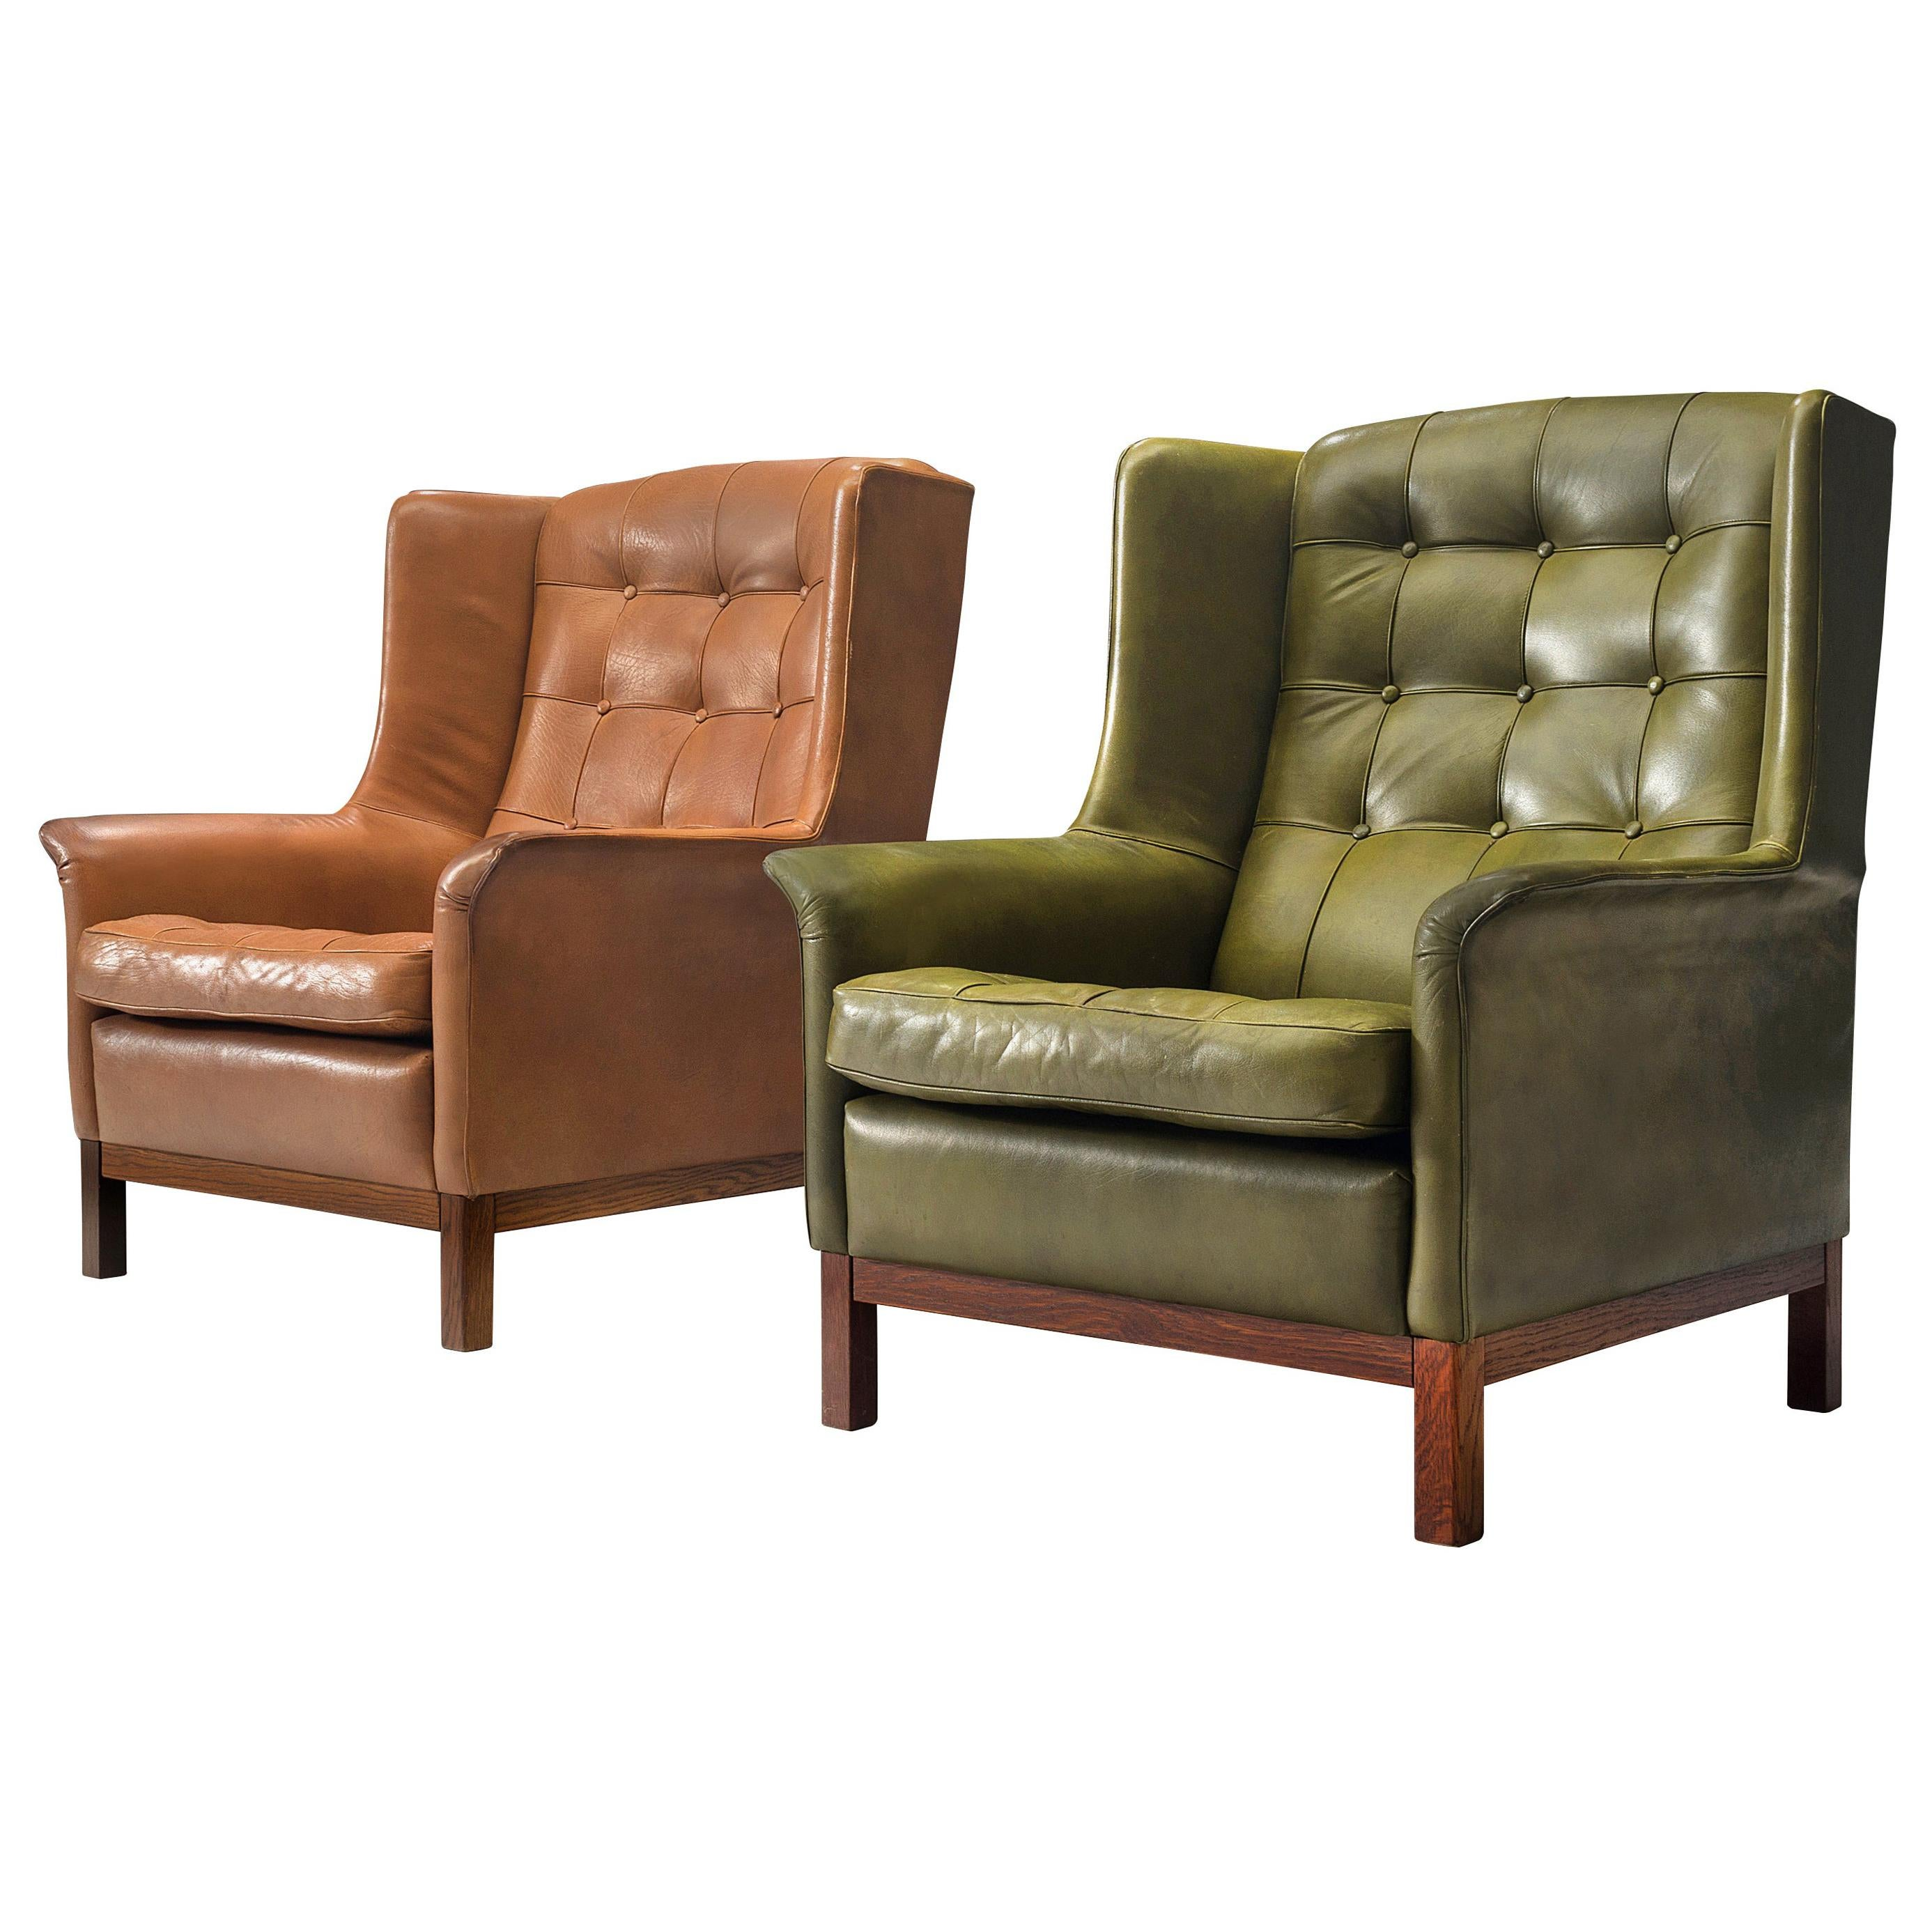 Pair of Arne Norell Lounge Chairs in Patinated Green and Cognac Leather